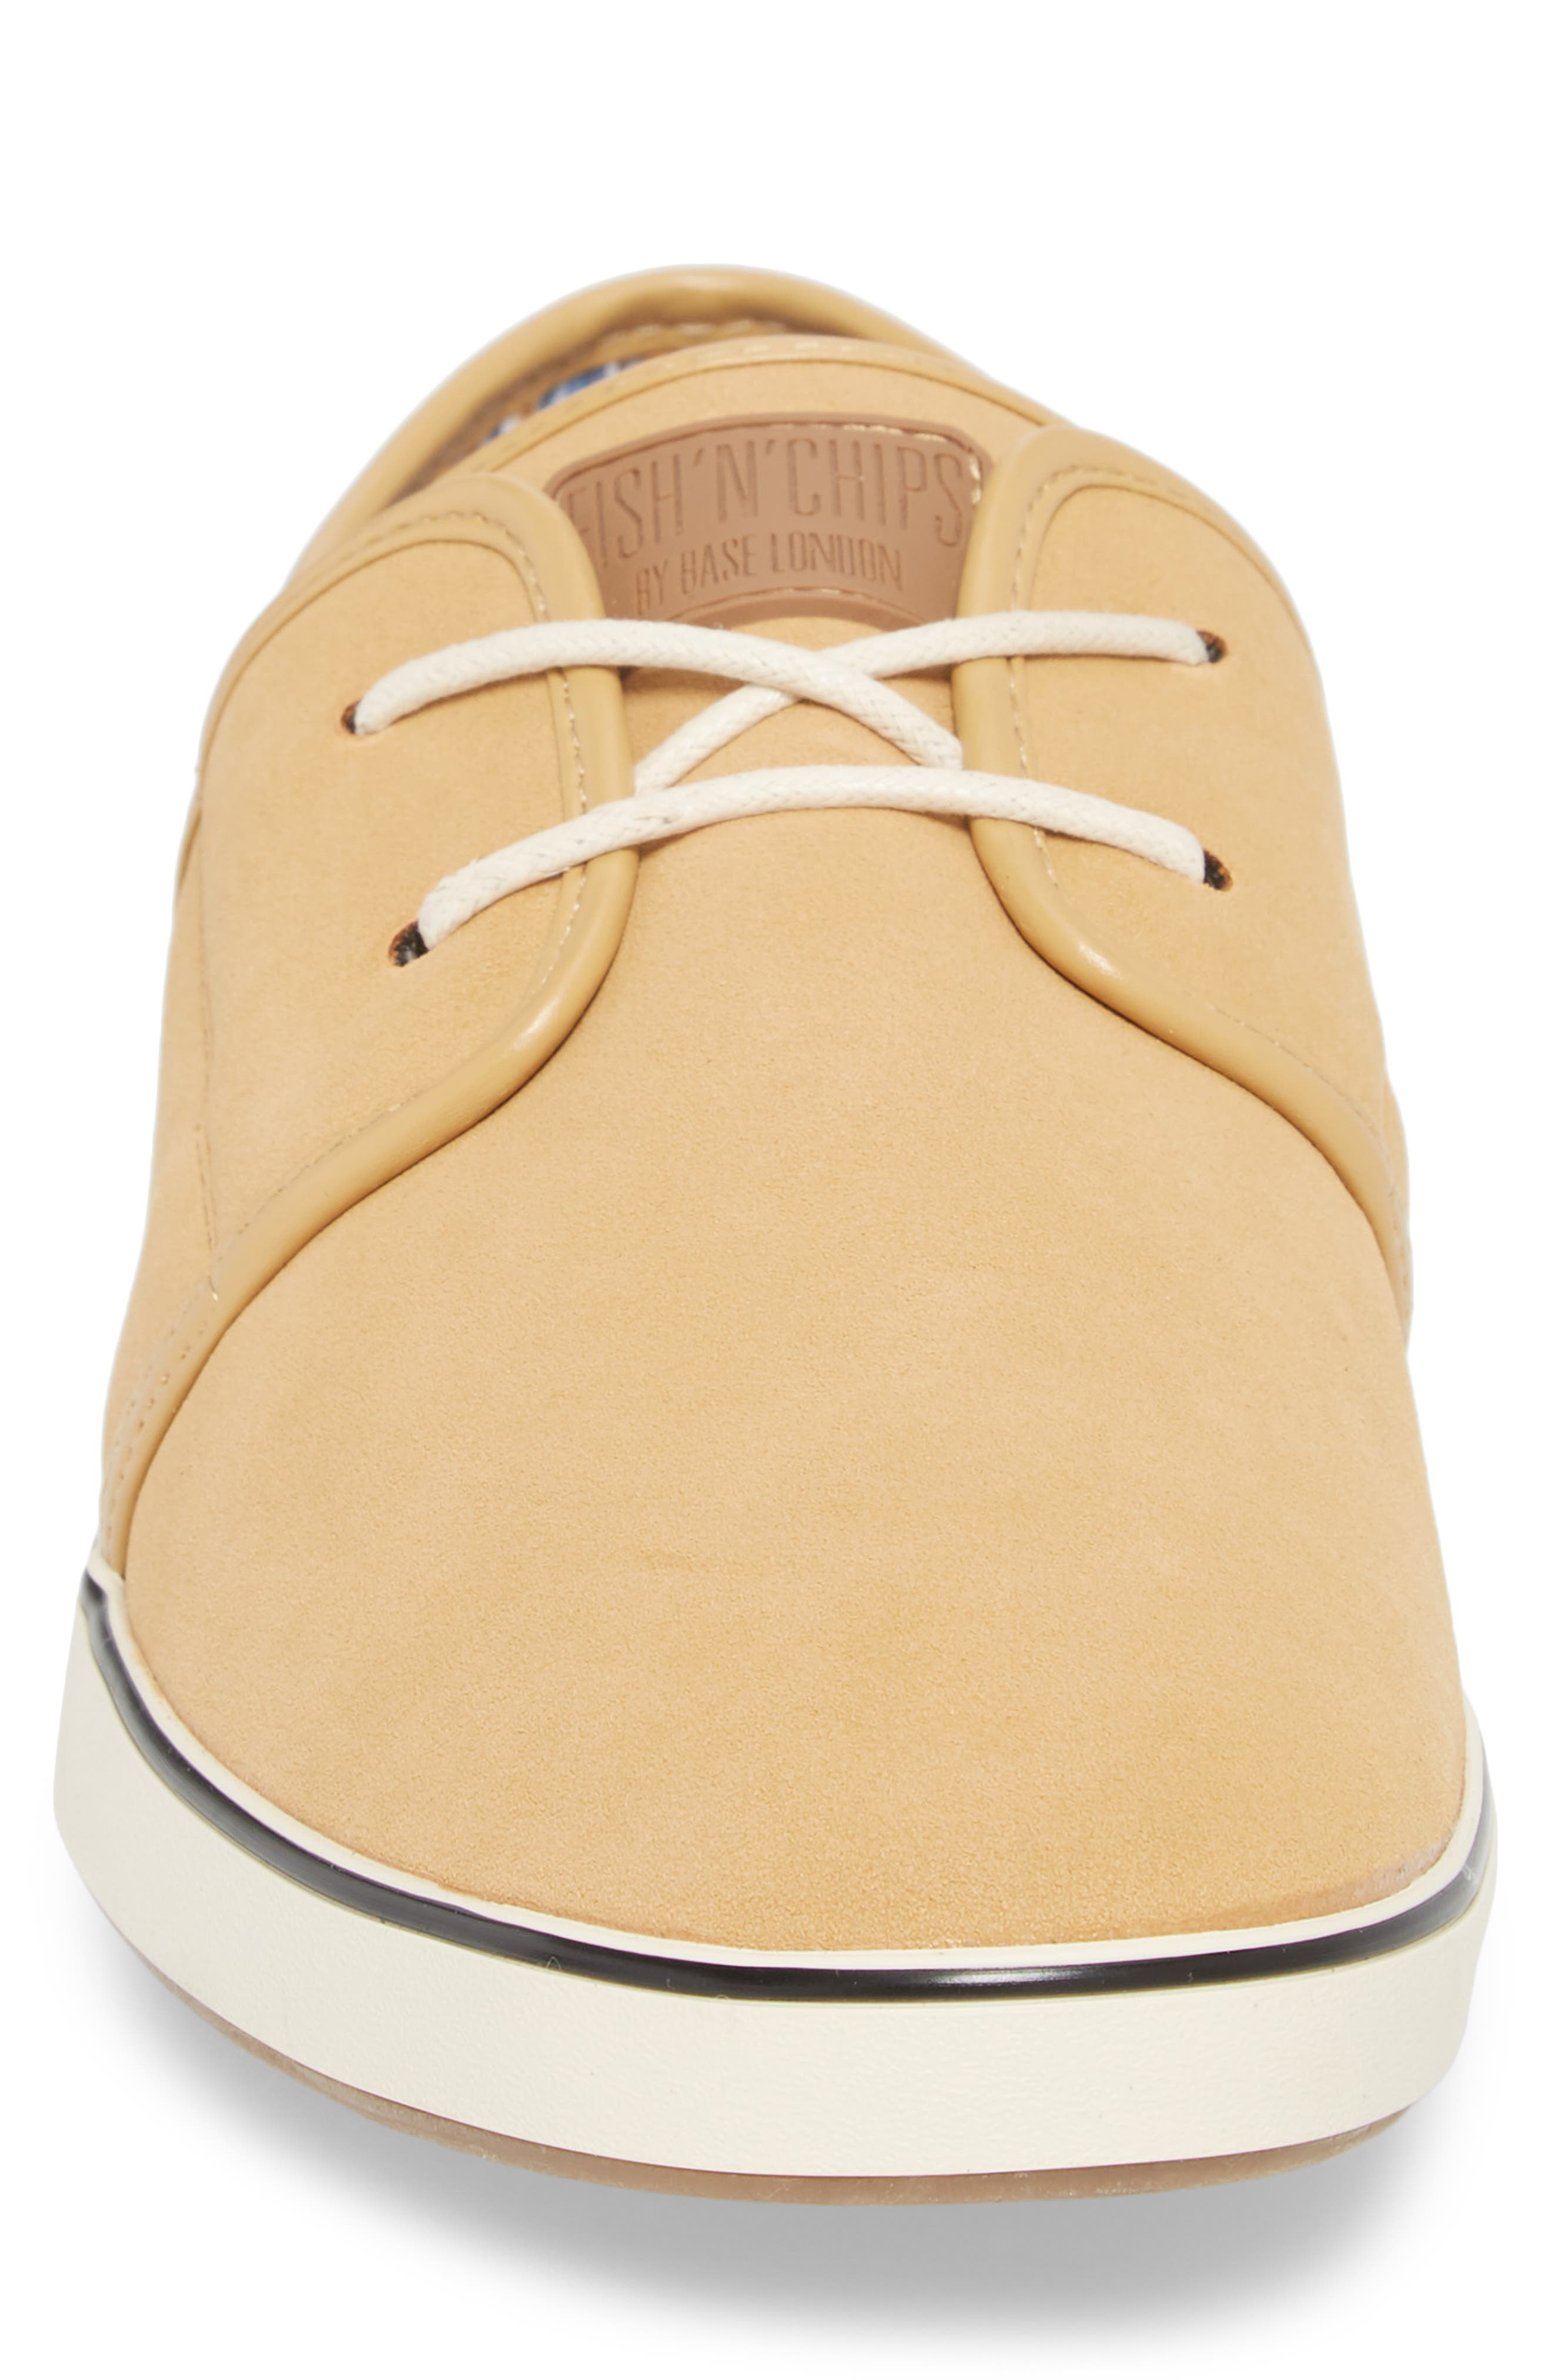 Fish 'N' Chips Surrey Low Top Sneaker,                             Alternate thumbnail 4, color,                             SOFT BROWN FAUX SUEDE